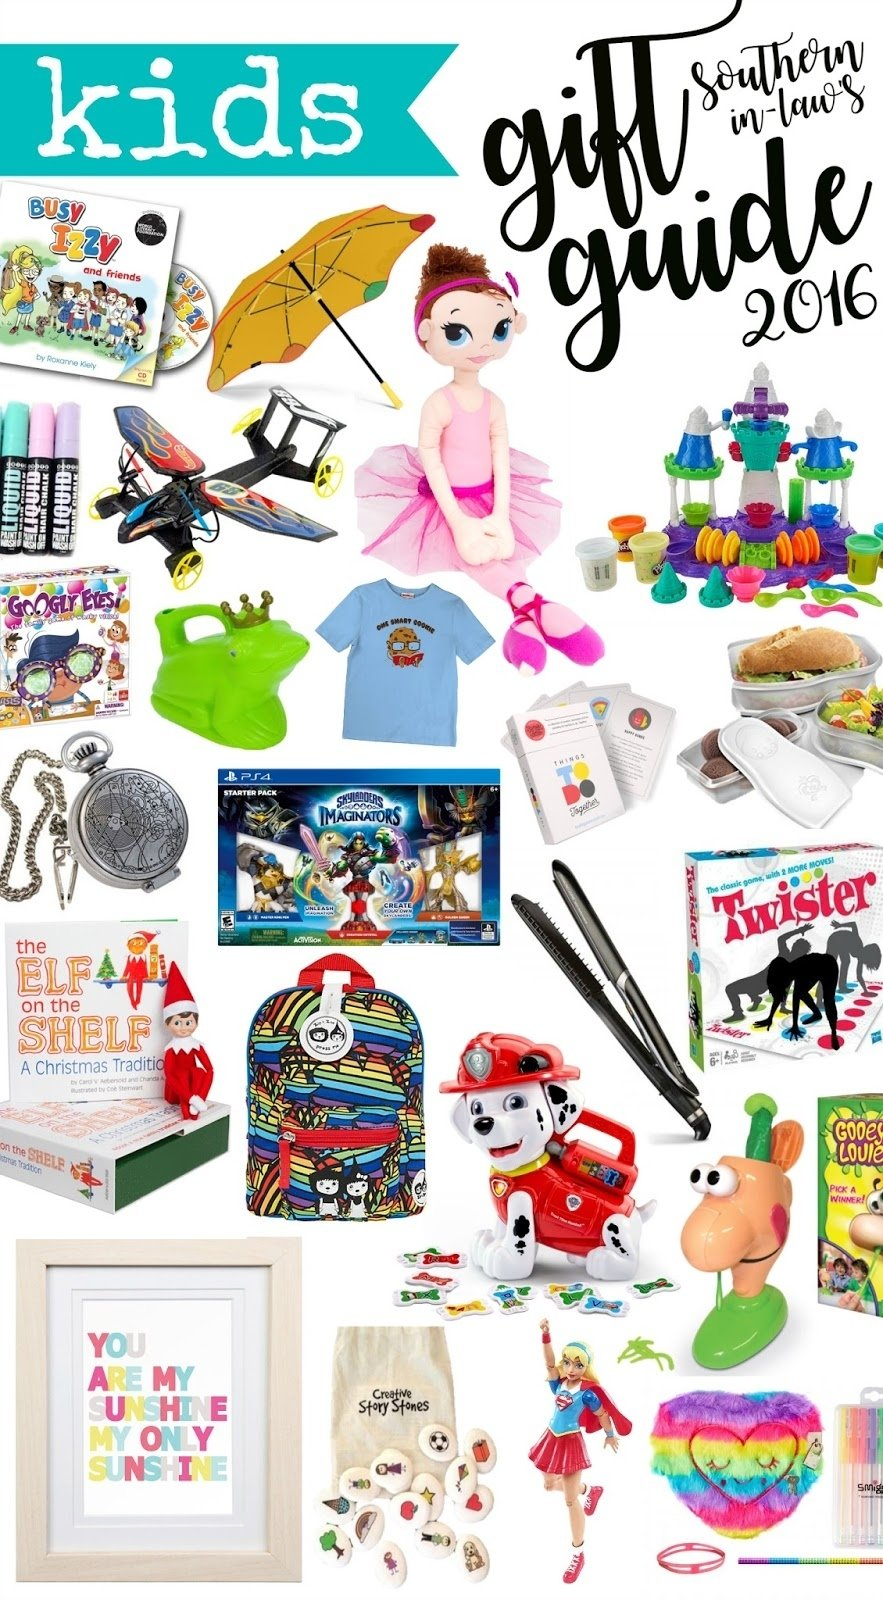 10 Attractive Christmas Gift Ideas For Kids Who Have Everything southern in law 2016 kids christmas gift guide 7 2020